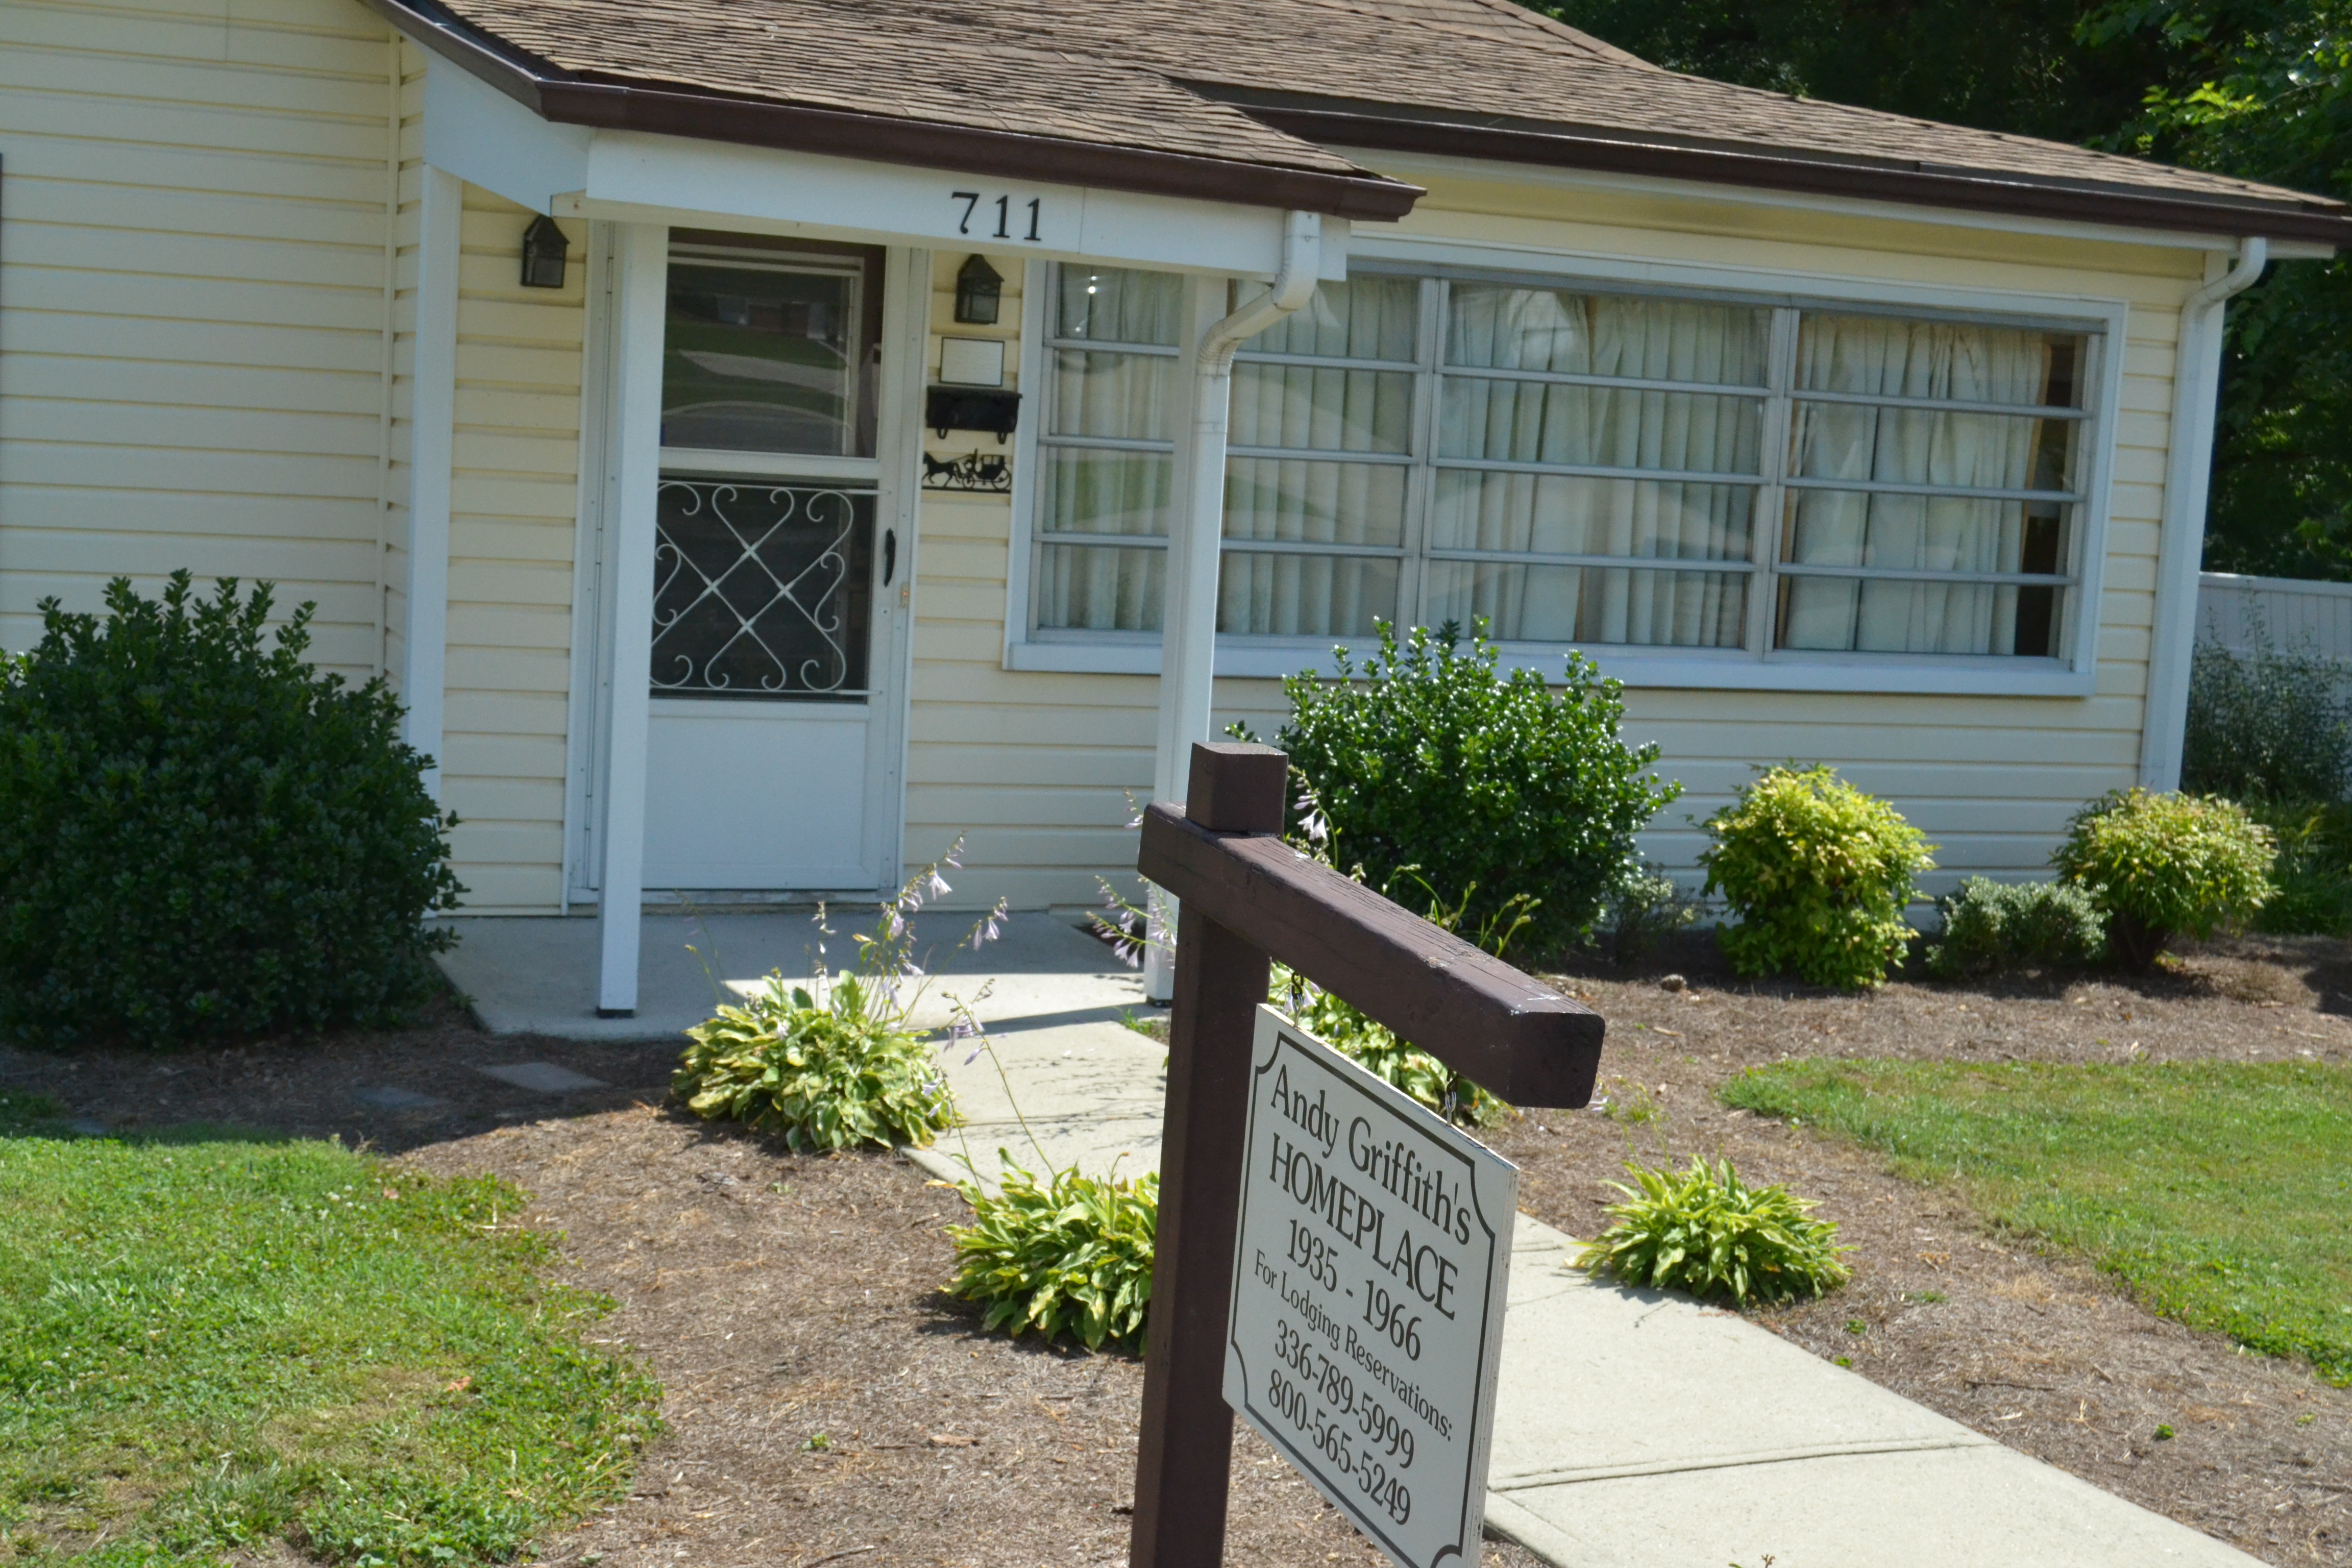 Andy Griffith's Homeplace